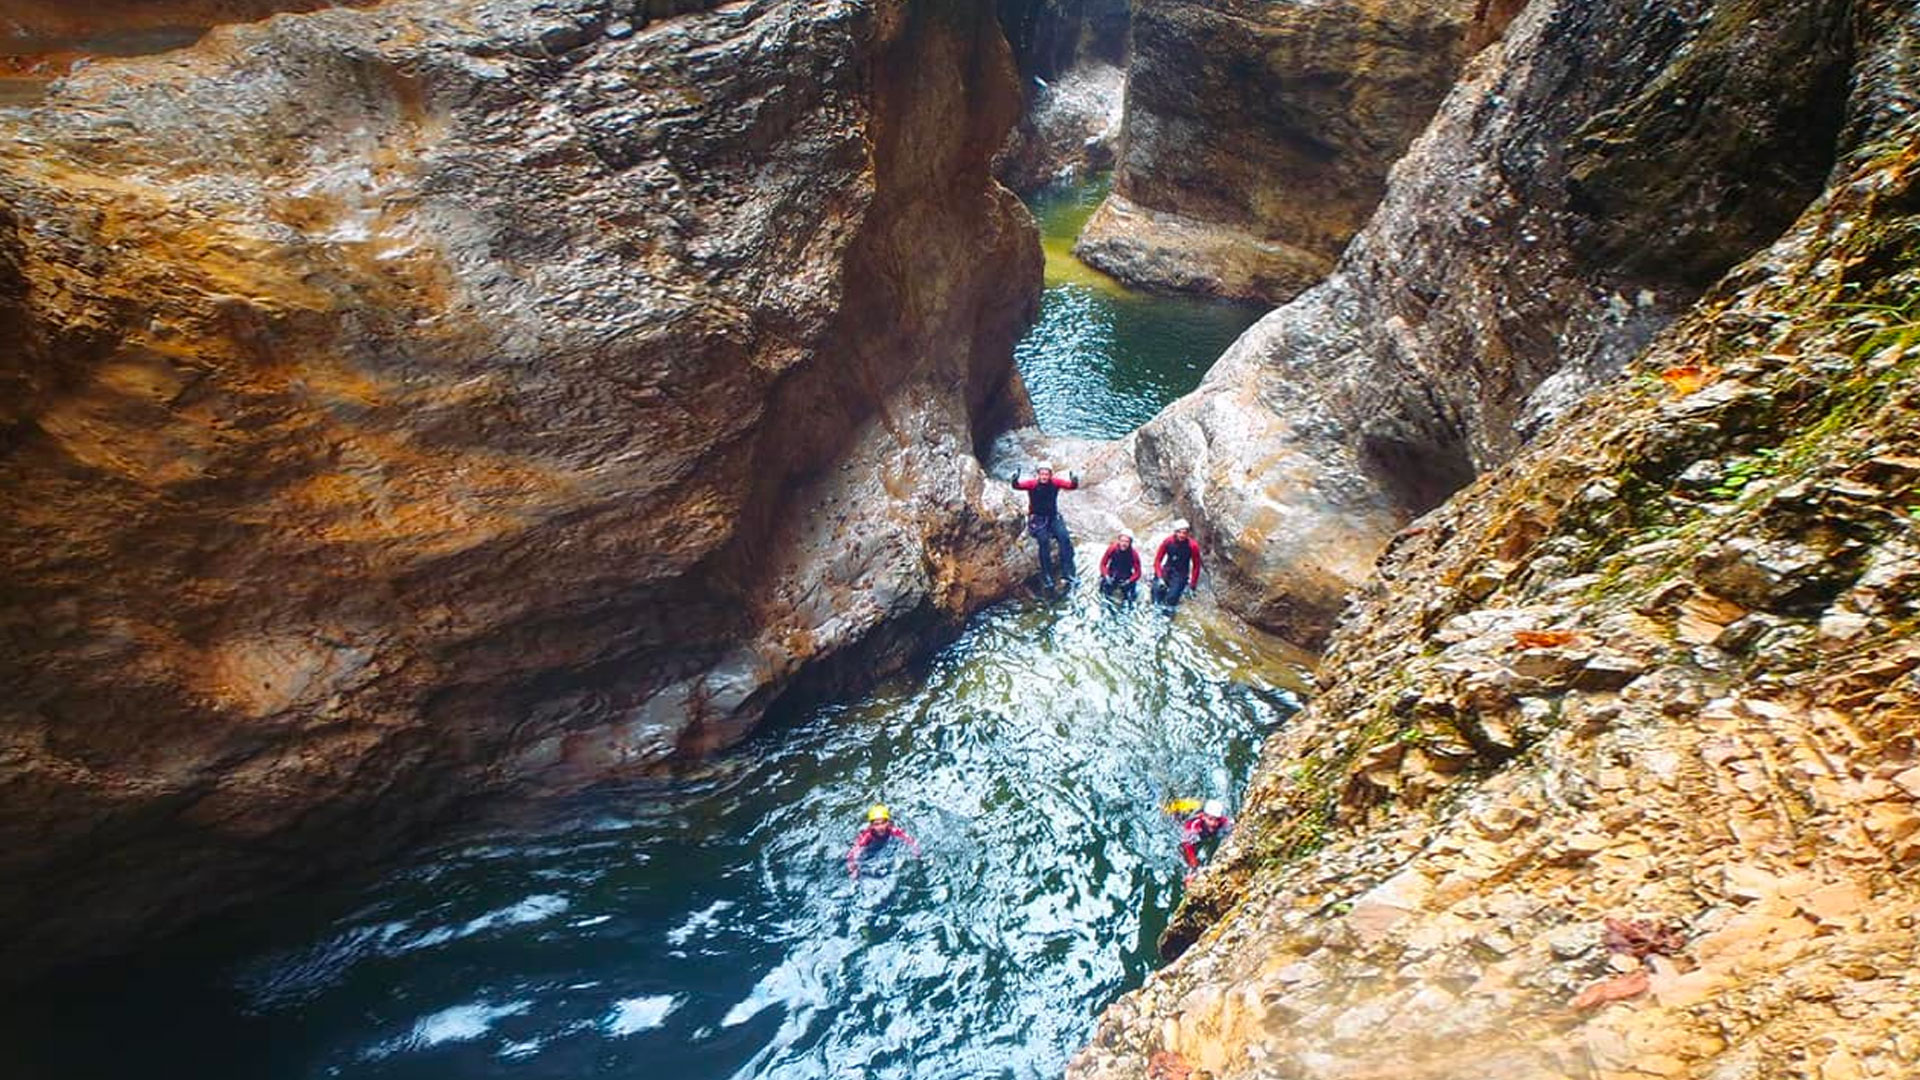 Canyoners swimming in a gorge